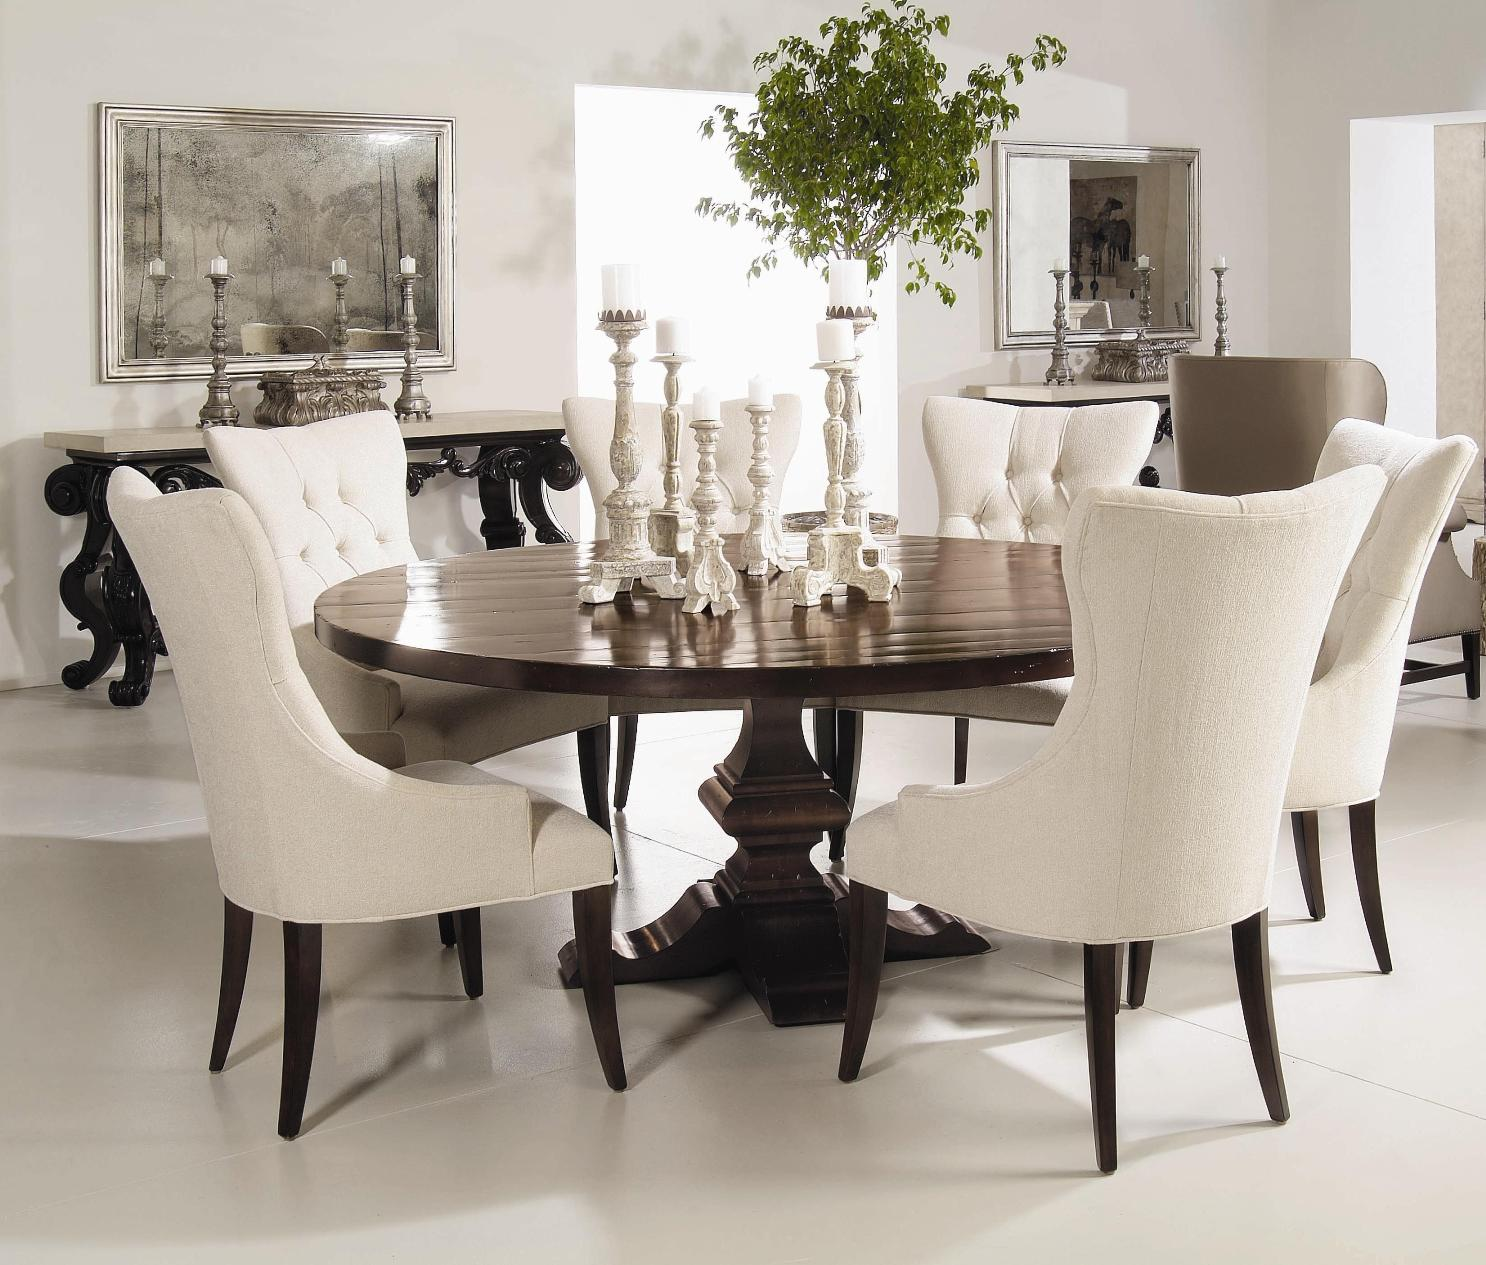 invest in pedestal dining room table for a magnificent beauty and functionality 4 invest in. Black Bedroom Furniture Sets. Home Design Ideas